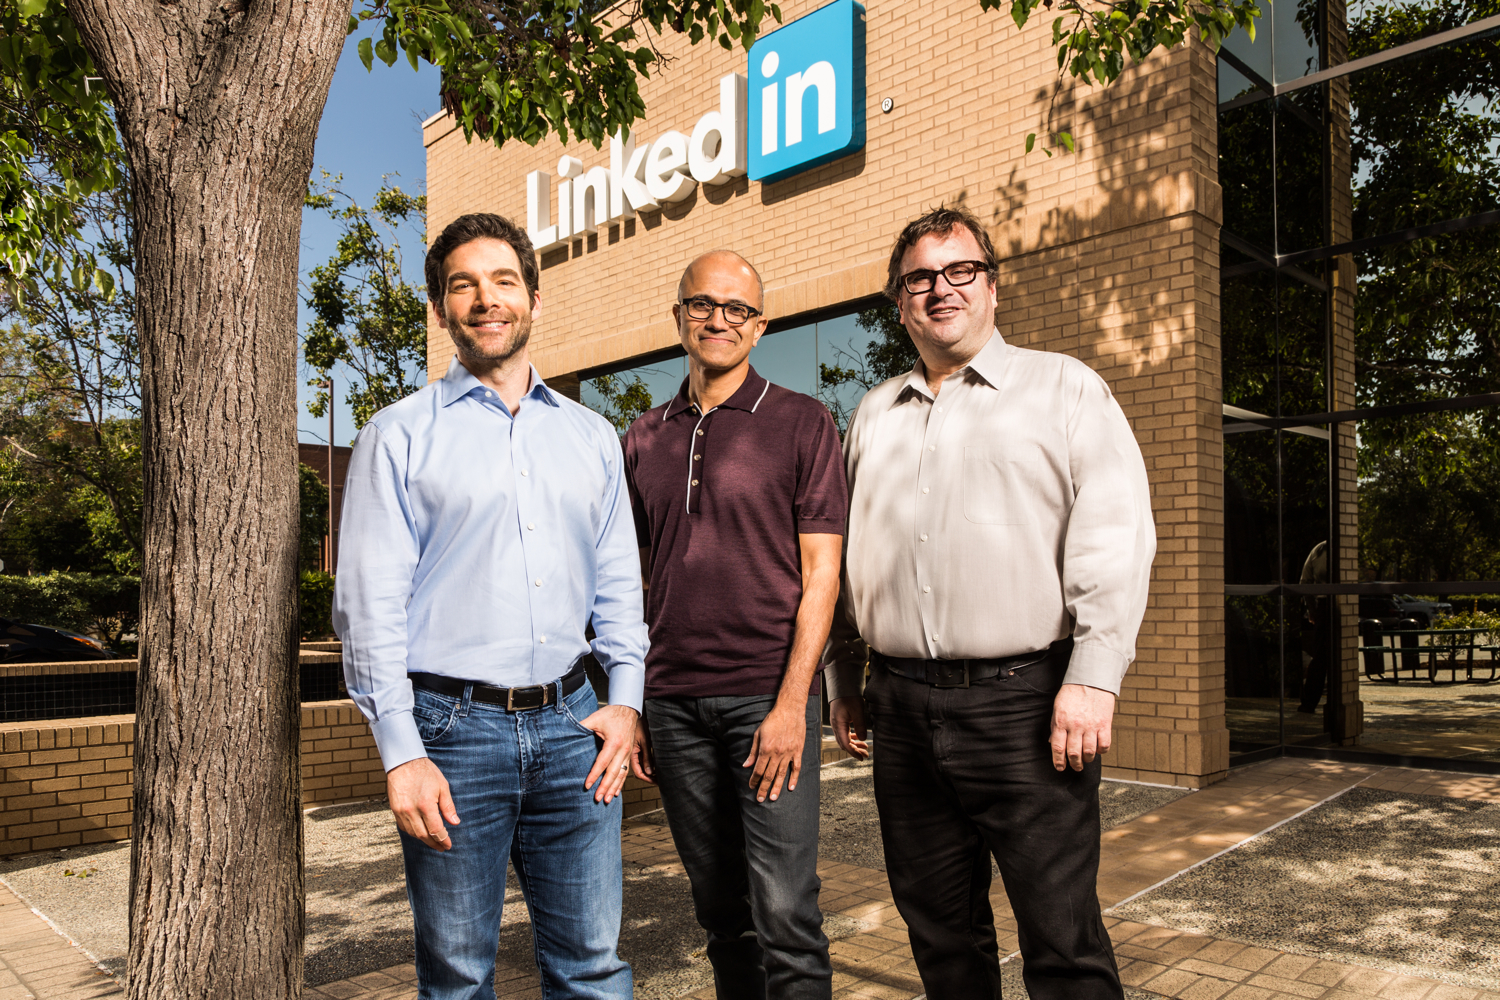 Microsoft reveals its plans to integrate LinkedIn with Office Outlook – Microsoft Articles of Incorporation